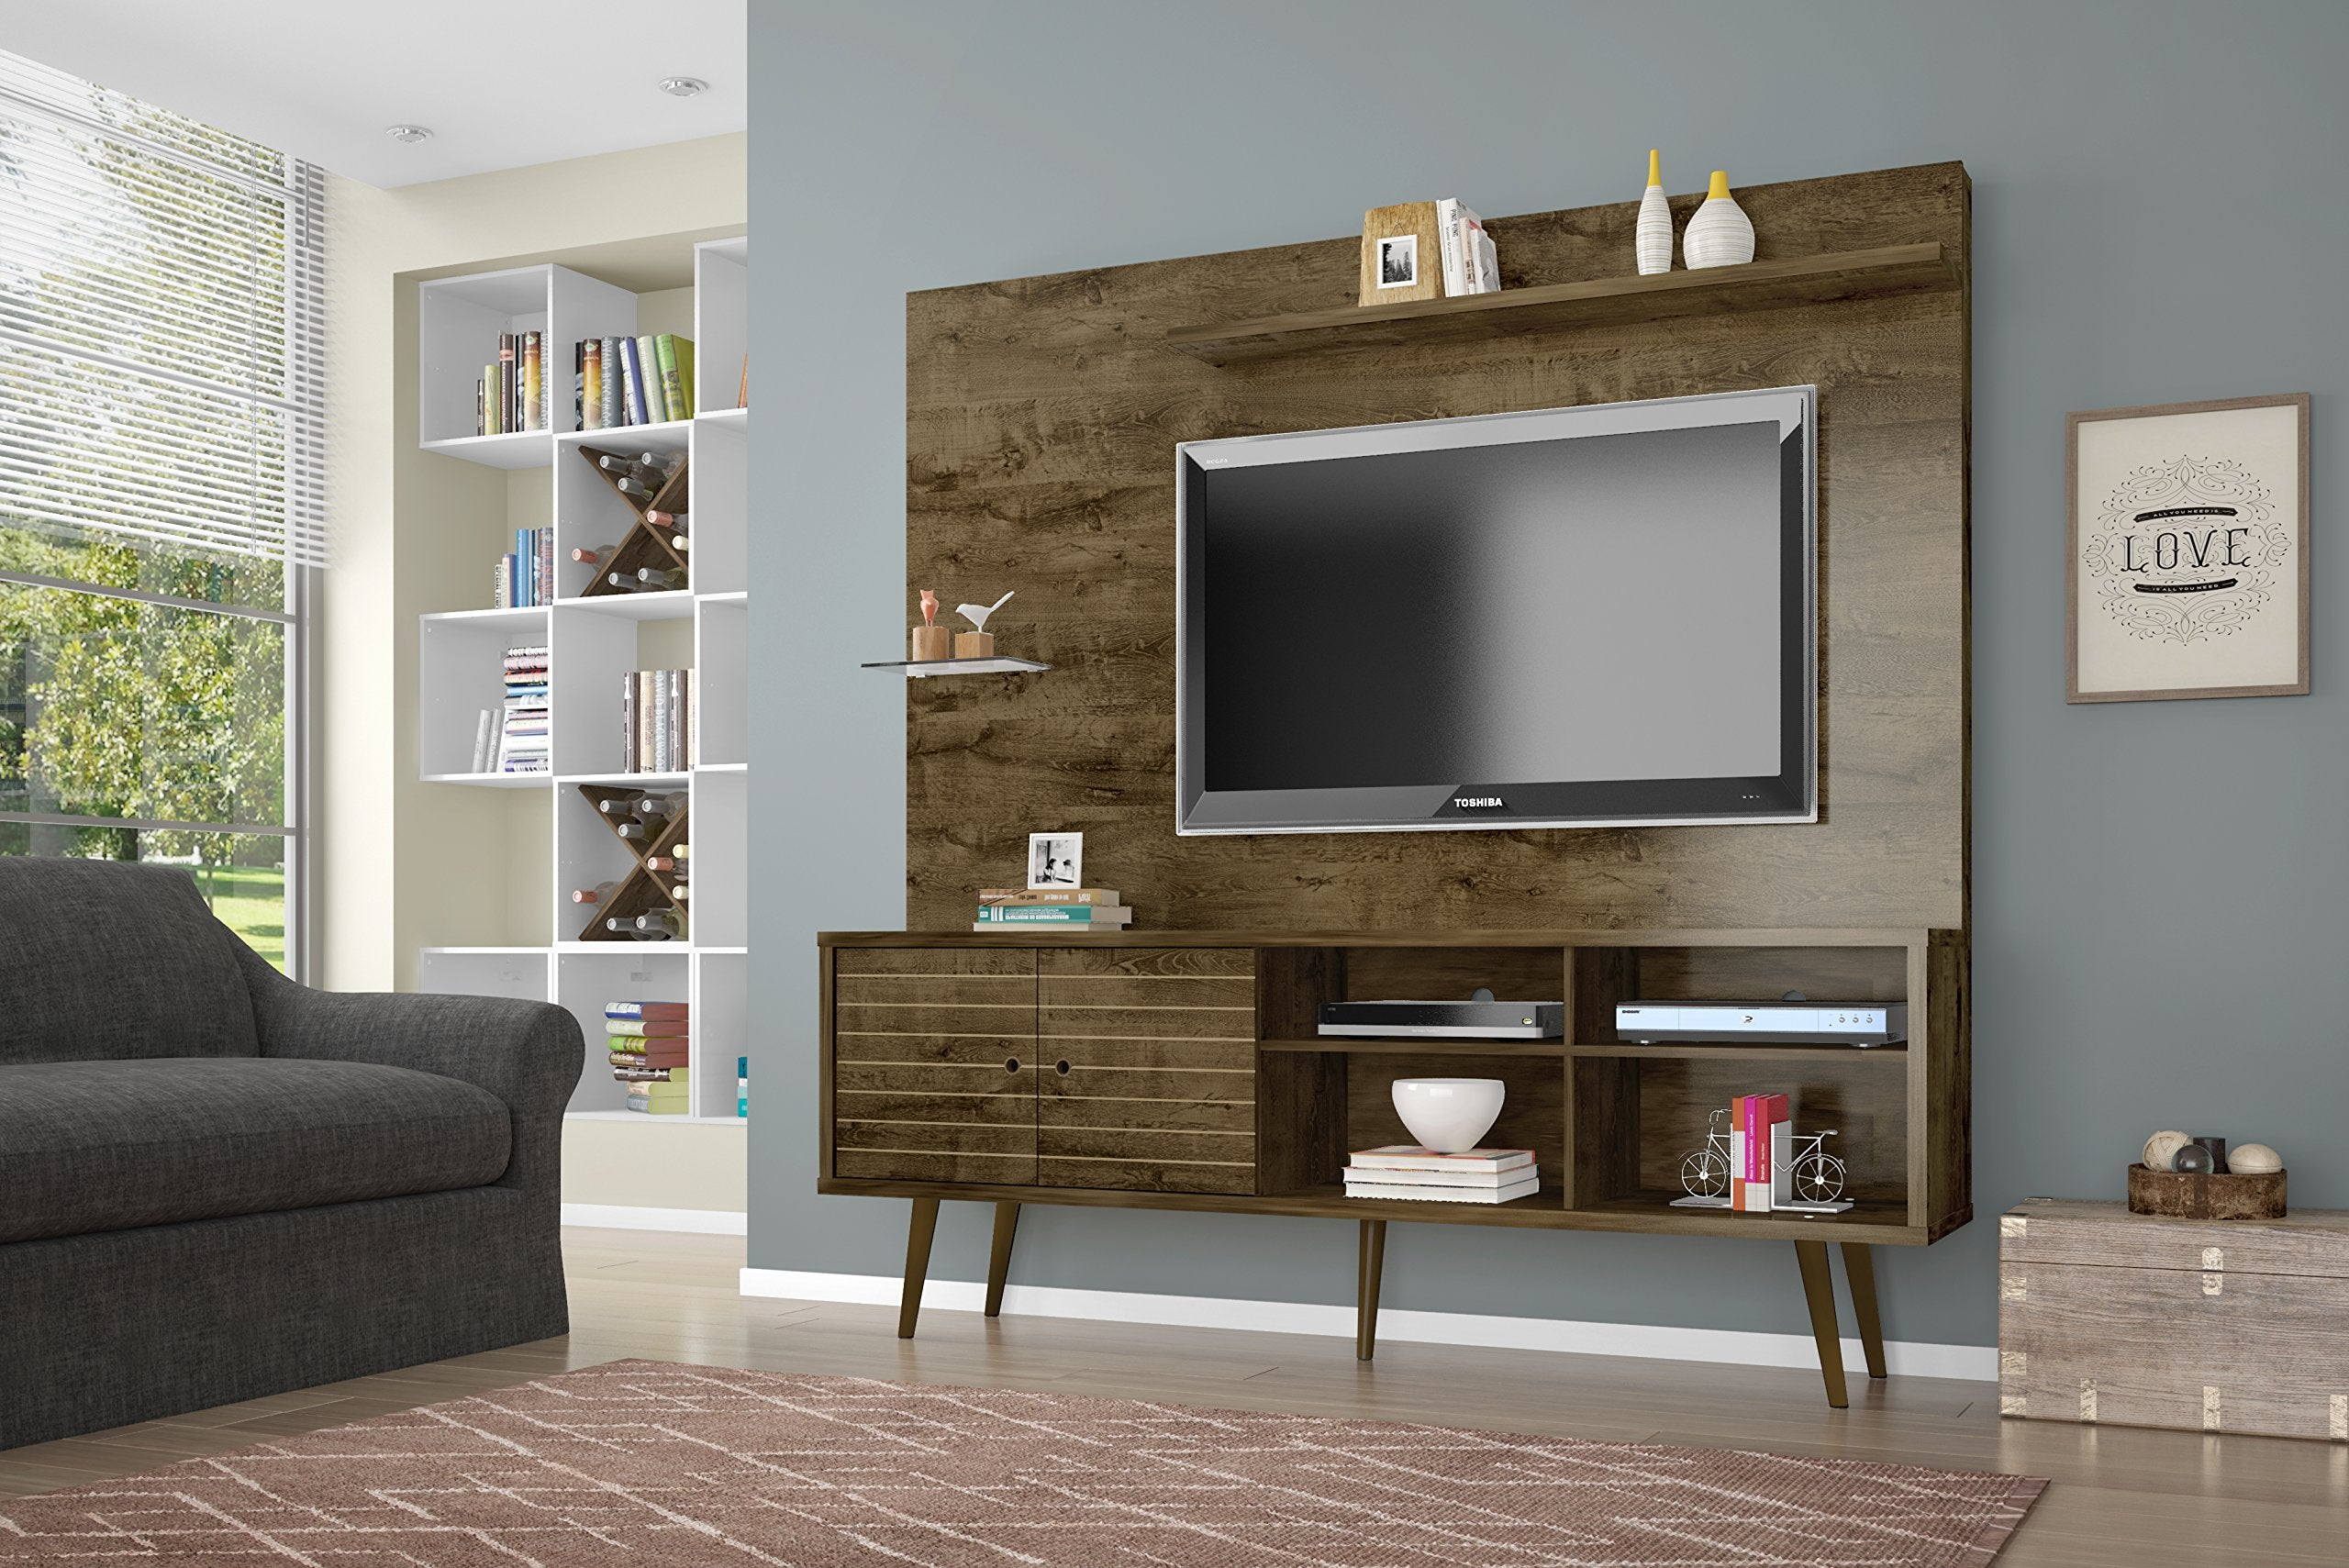 Manhattan Comfort Liberty Complete Living Room Entertainment Center And Tv Stand, Rustic Brown